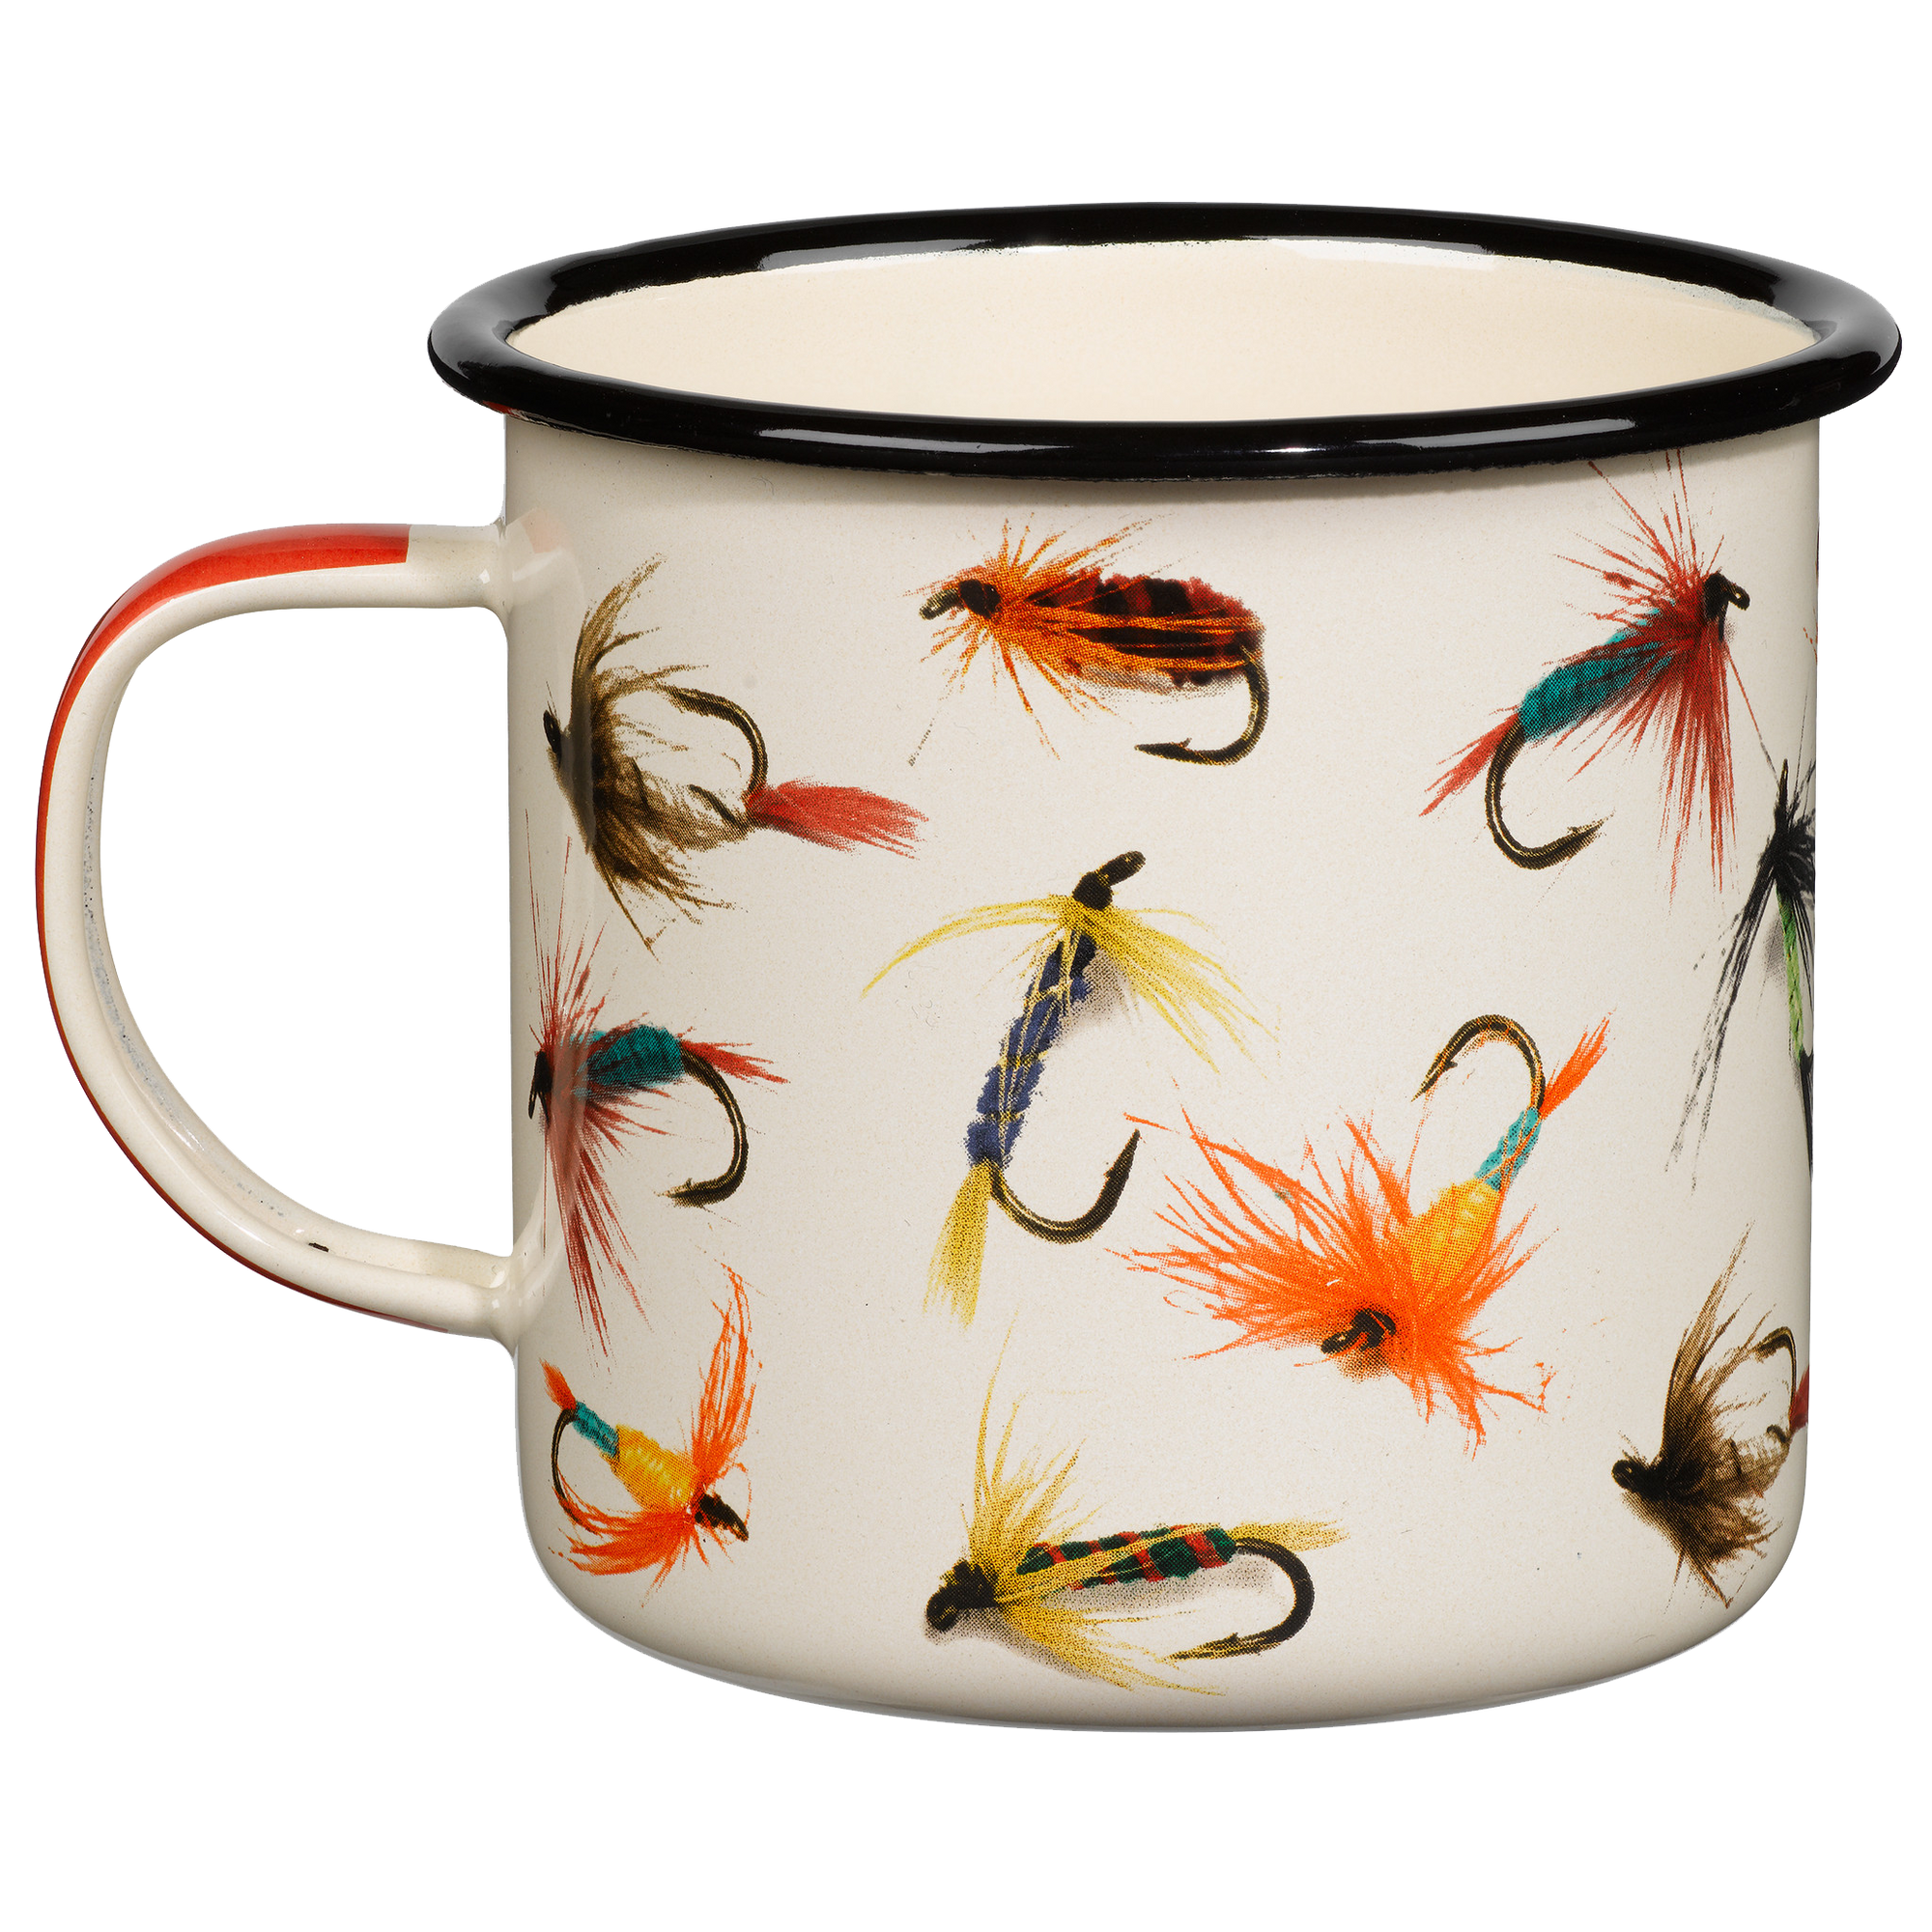 Enamel Mug with Flies